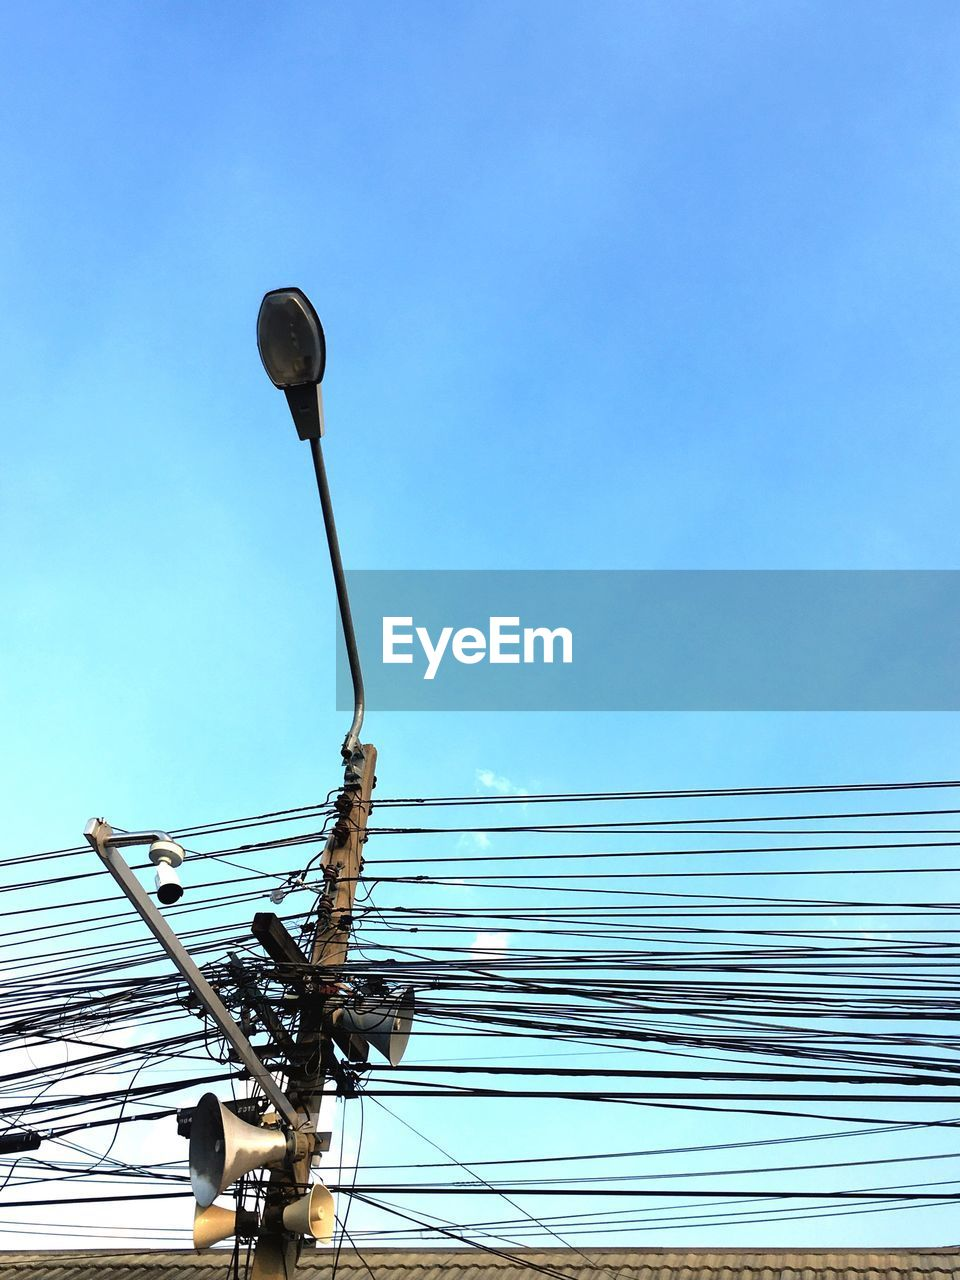 Low angle view of telephone pole with street light against blue sky